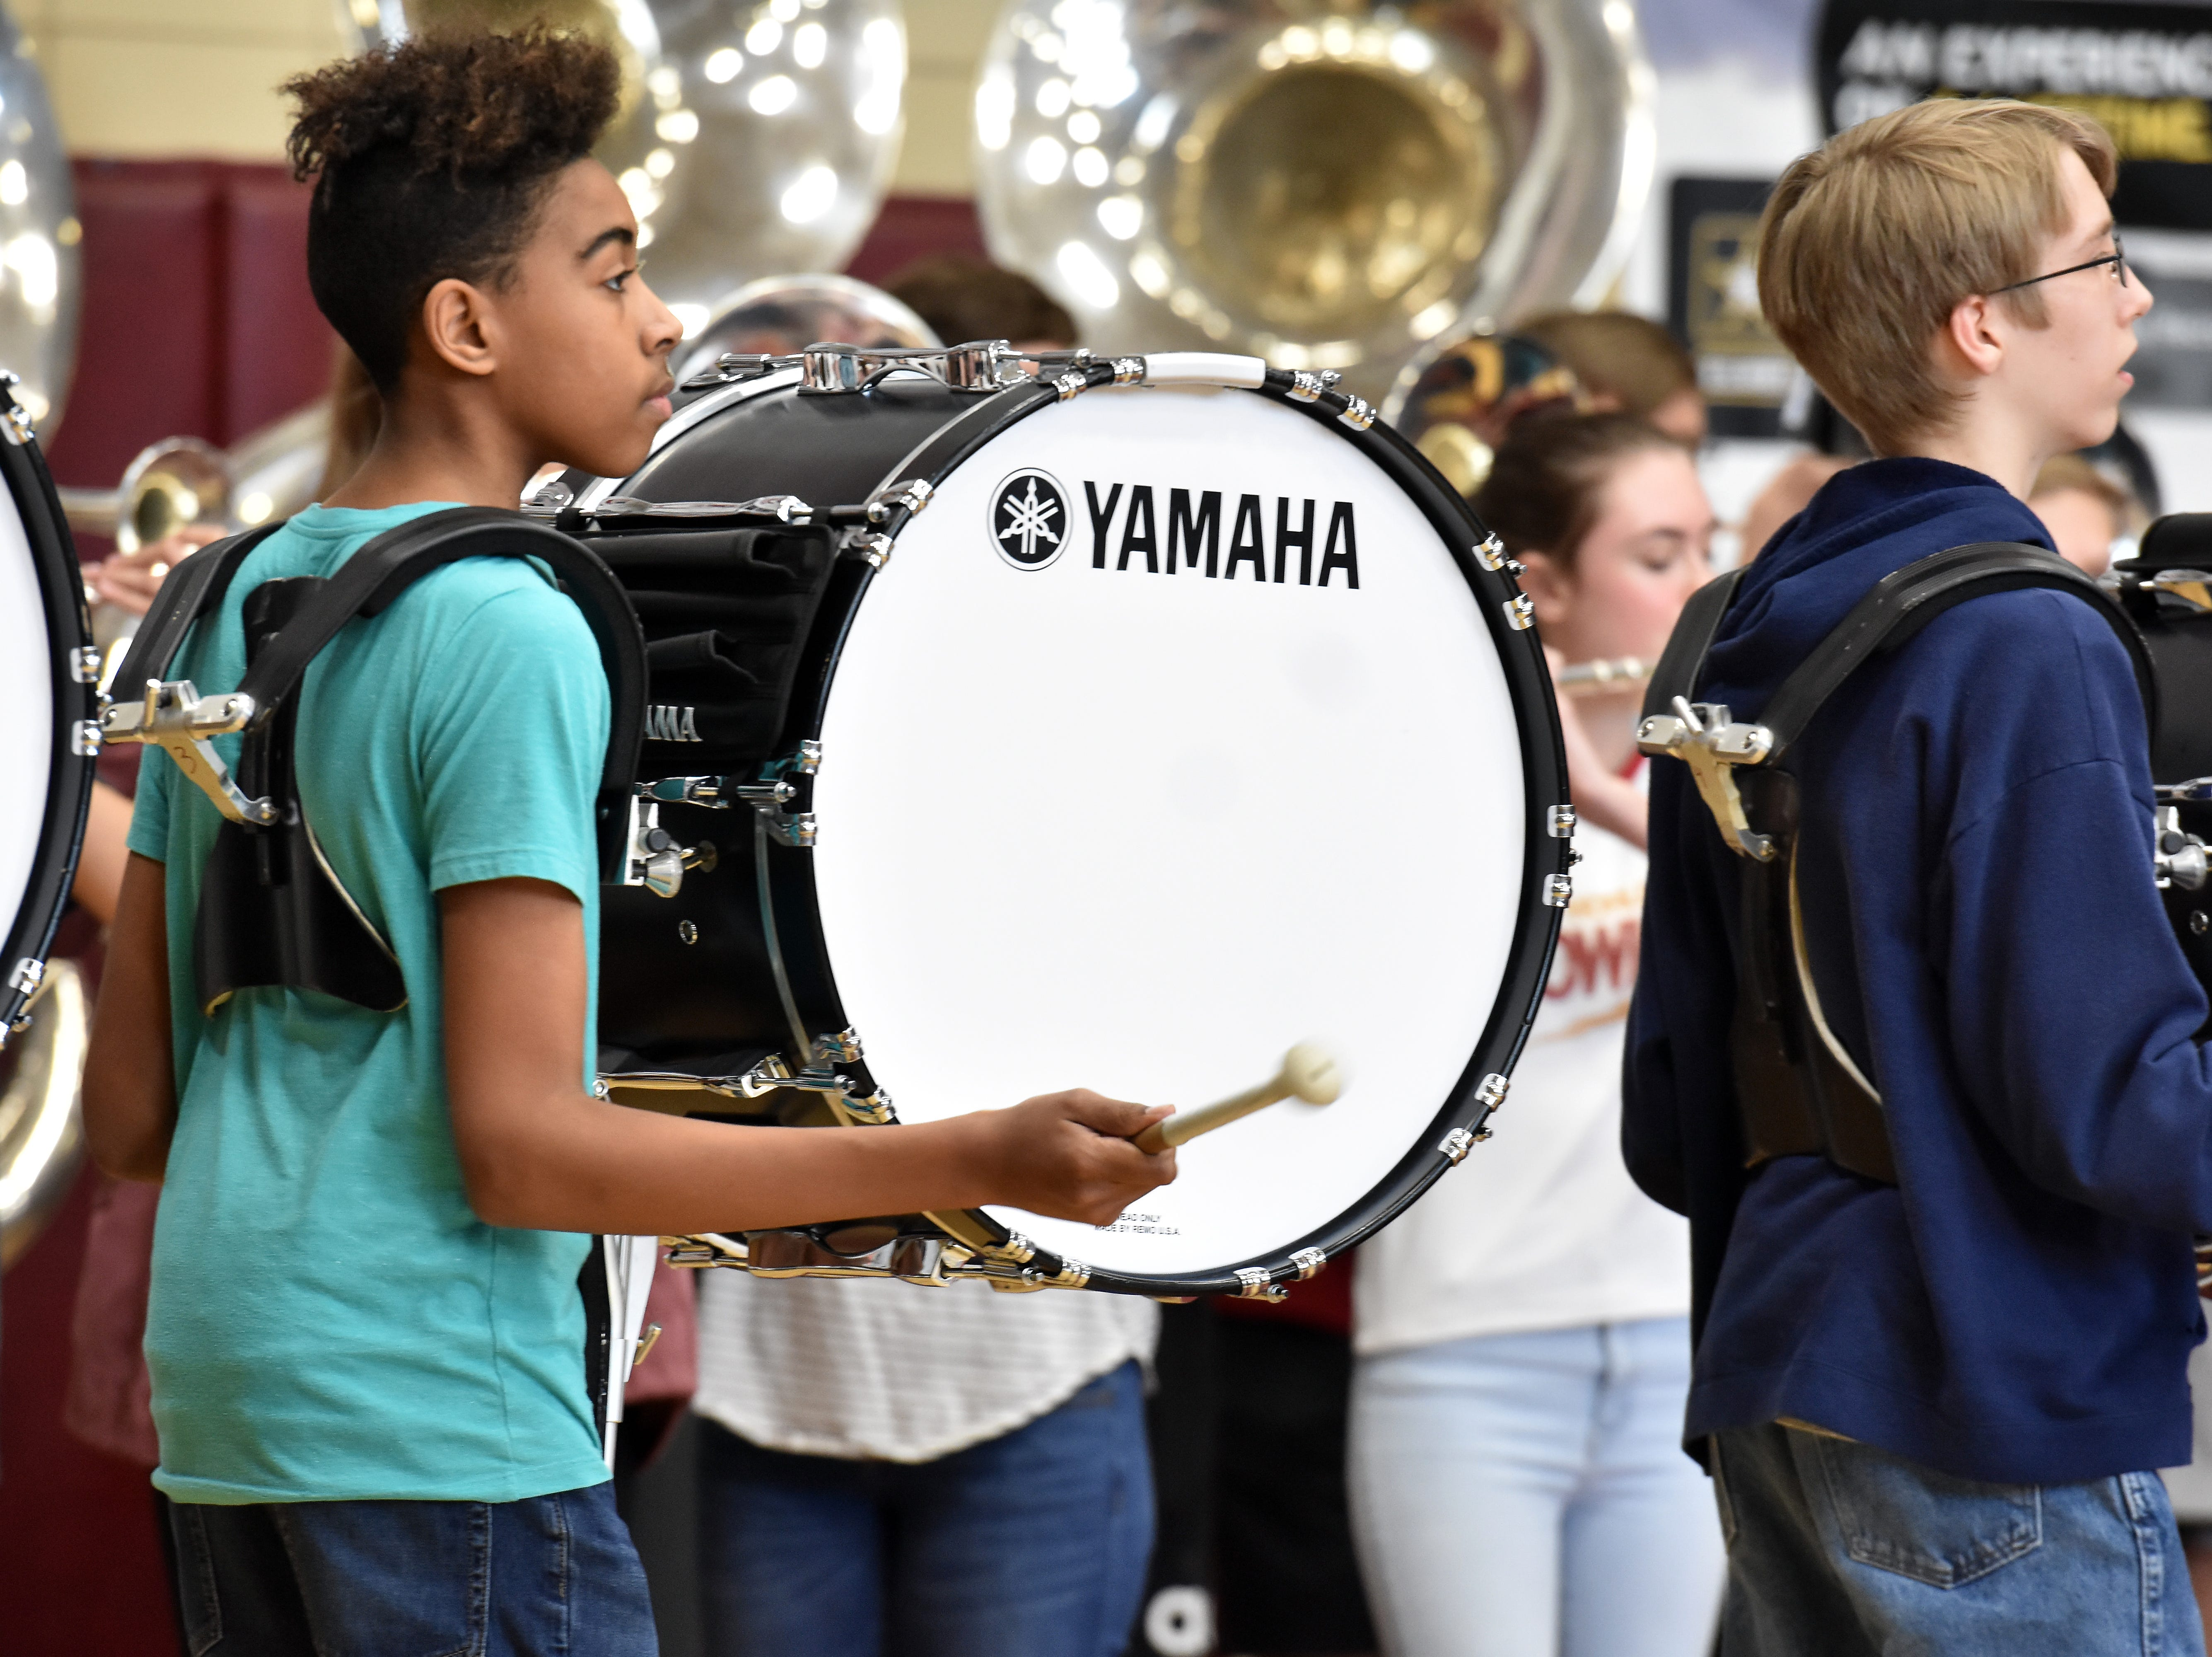 The Bearden High band pumped up the crowd during the state championship celebration for the basketball team on Friday, March 29.